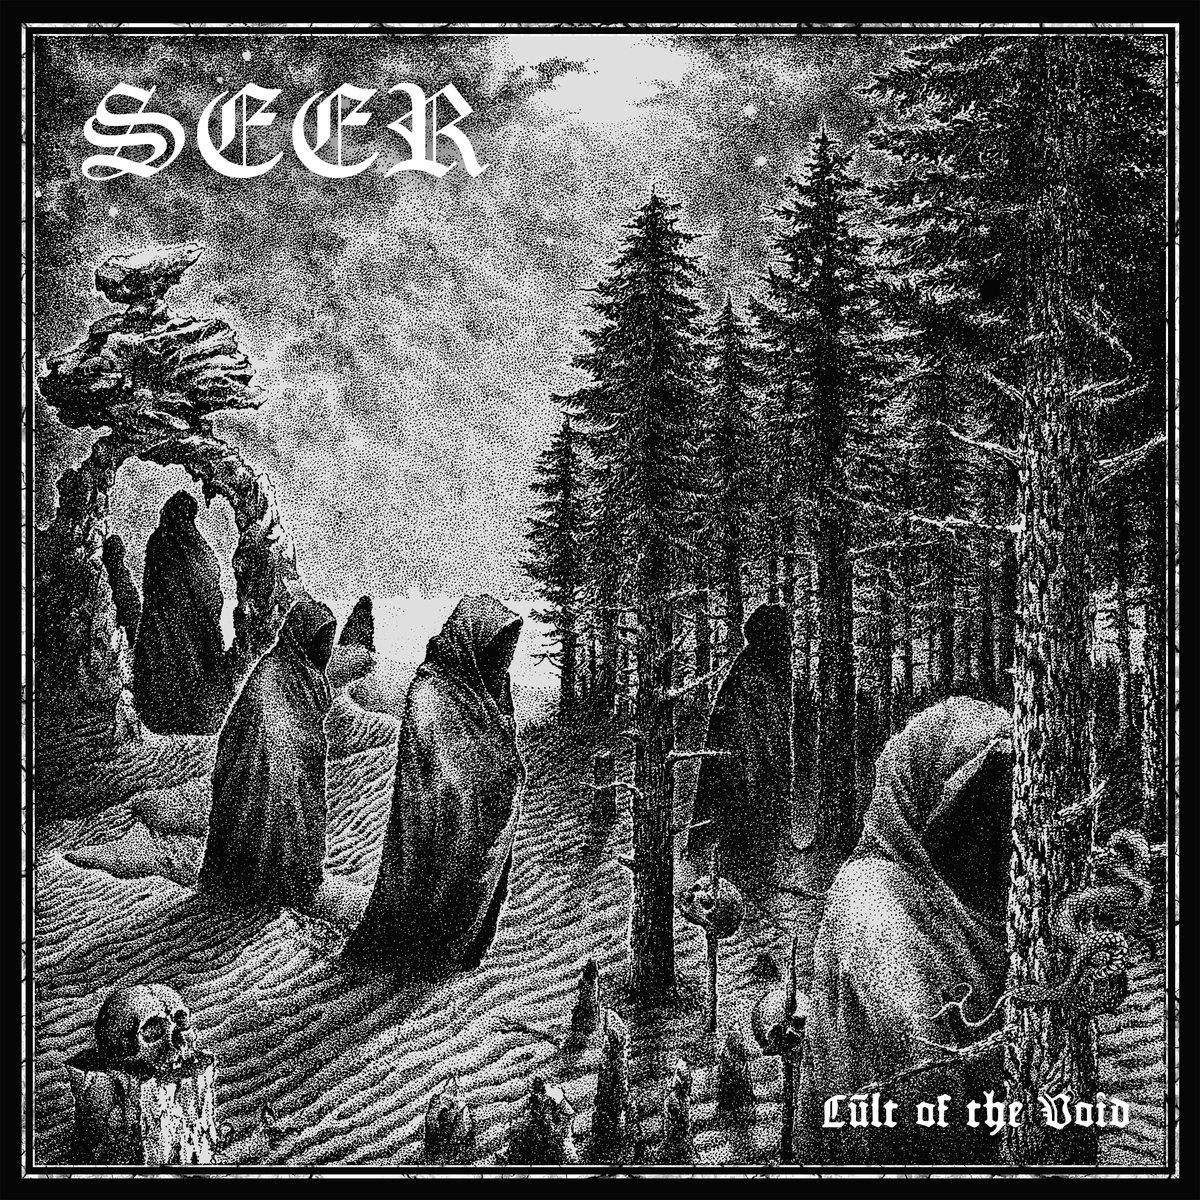 Seer – Vol. III & IV – Cult Of The Void